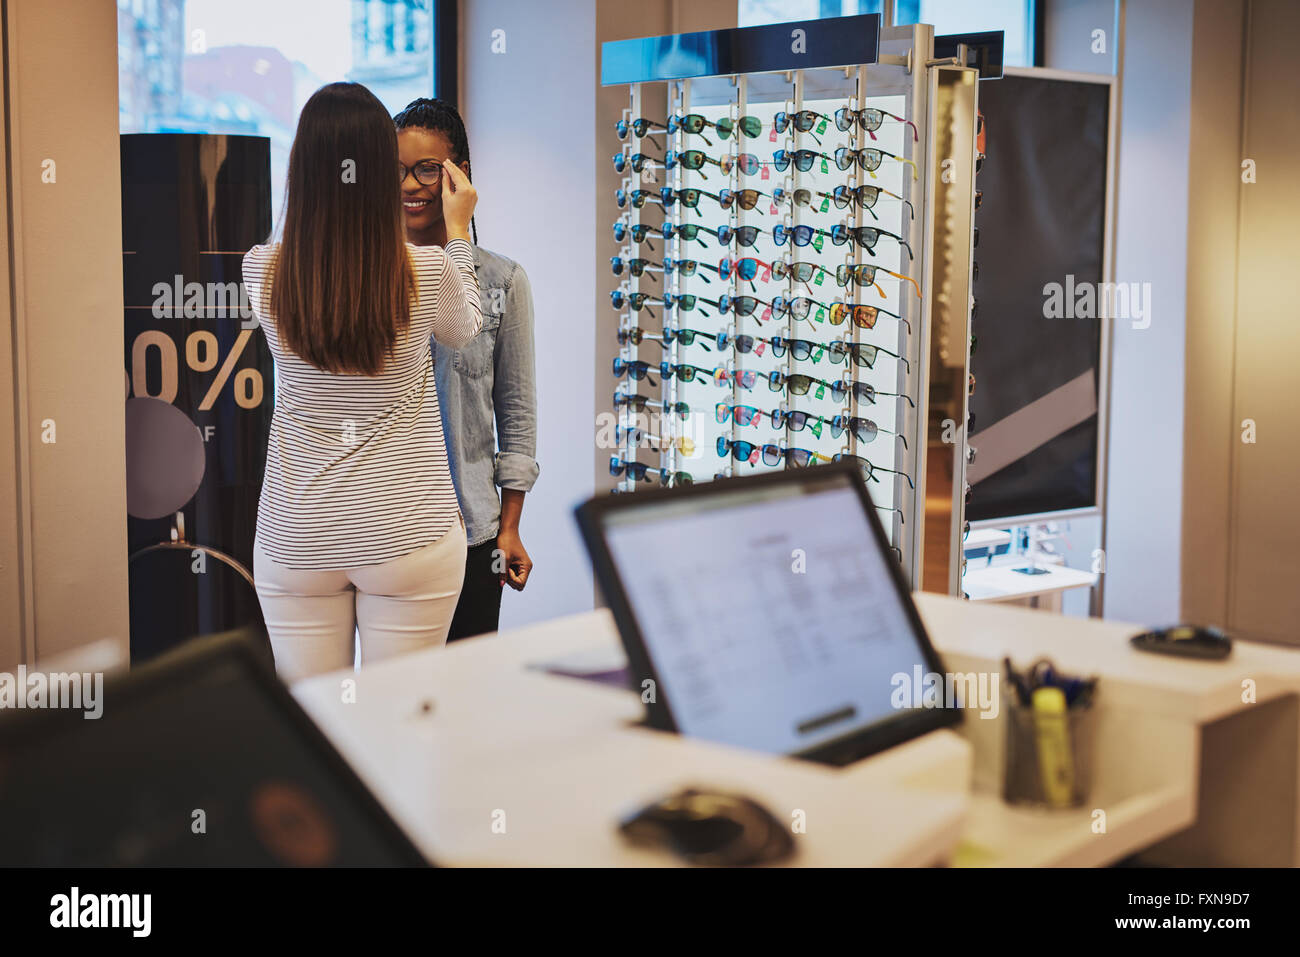 Saleslady assisting a customer in a store trying on eyeglasses with a view of a computer terminal in the foreground - Stock Image